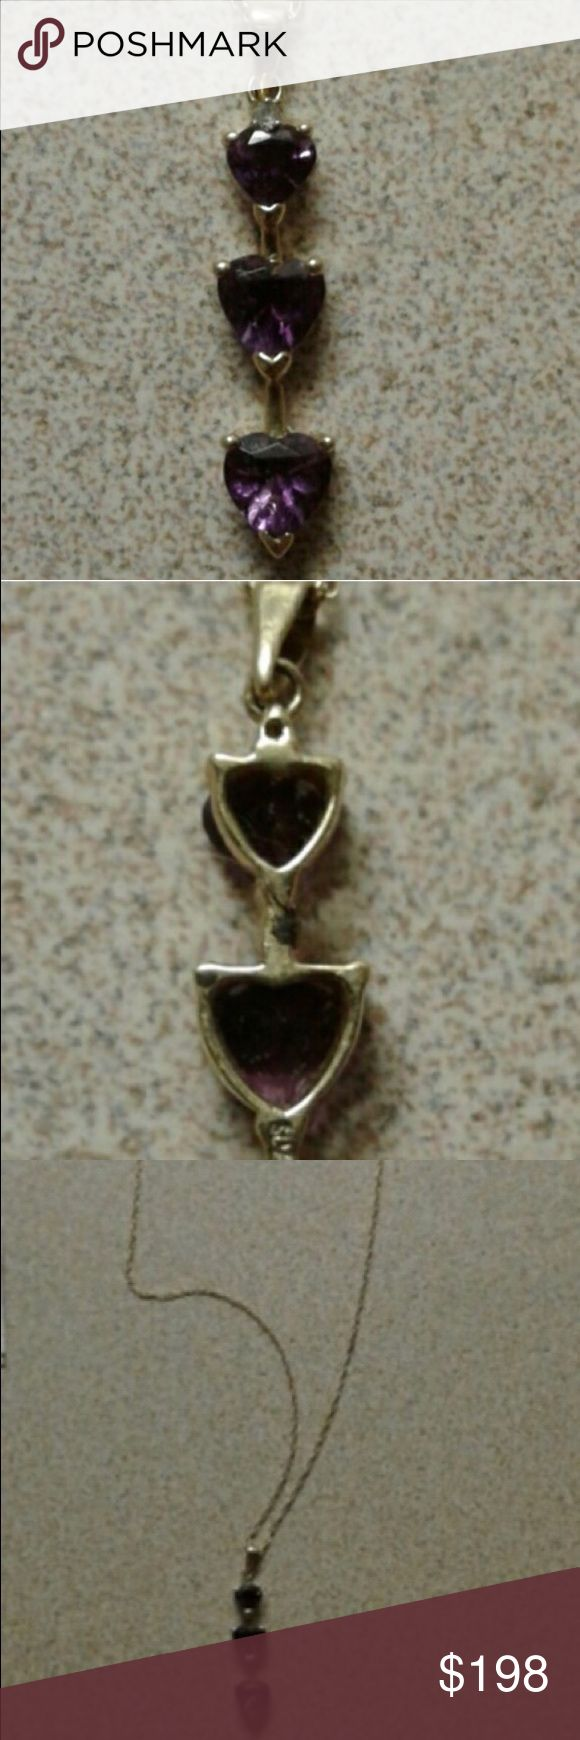 14K AND AMETHYST NECKLACE REAL 14k AND GORGEOUS AMETHYST NECKLACE TRADE VALUE $300 Jewelry Necklaces